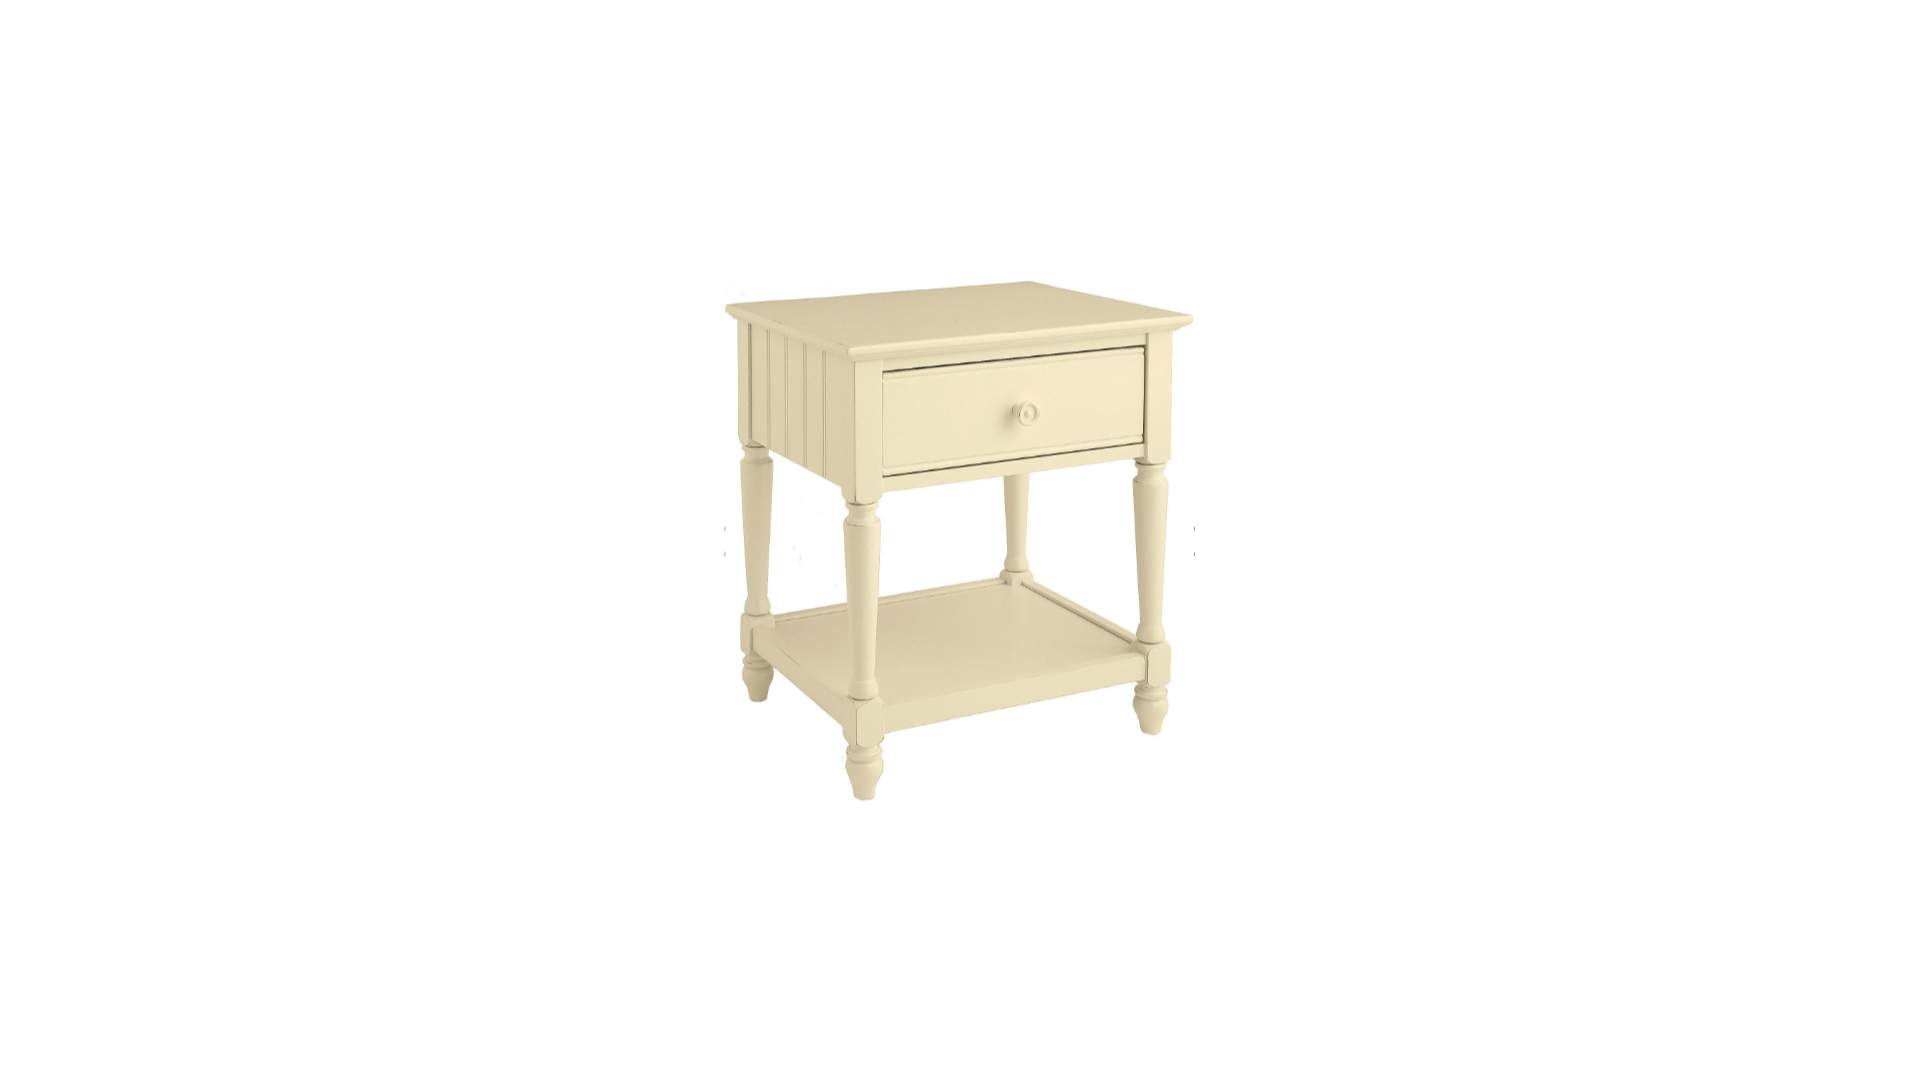 "Pair Pier One Side Tables, Cottage Collection Antique White Night Stands.<br /> Antique white<br /> 23""W x 18""D x 26""H<br /> Poplar, rubberwood, pine, beechwood, engineered wood, metal<br /> Clean with a soft, damp cloth<br /> Imported"